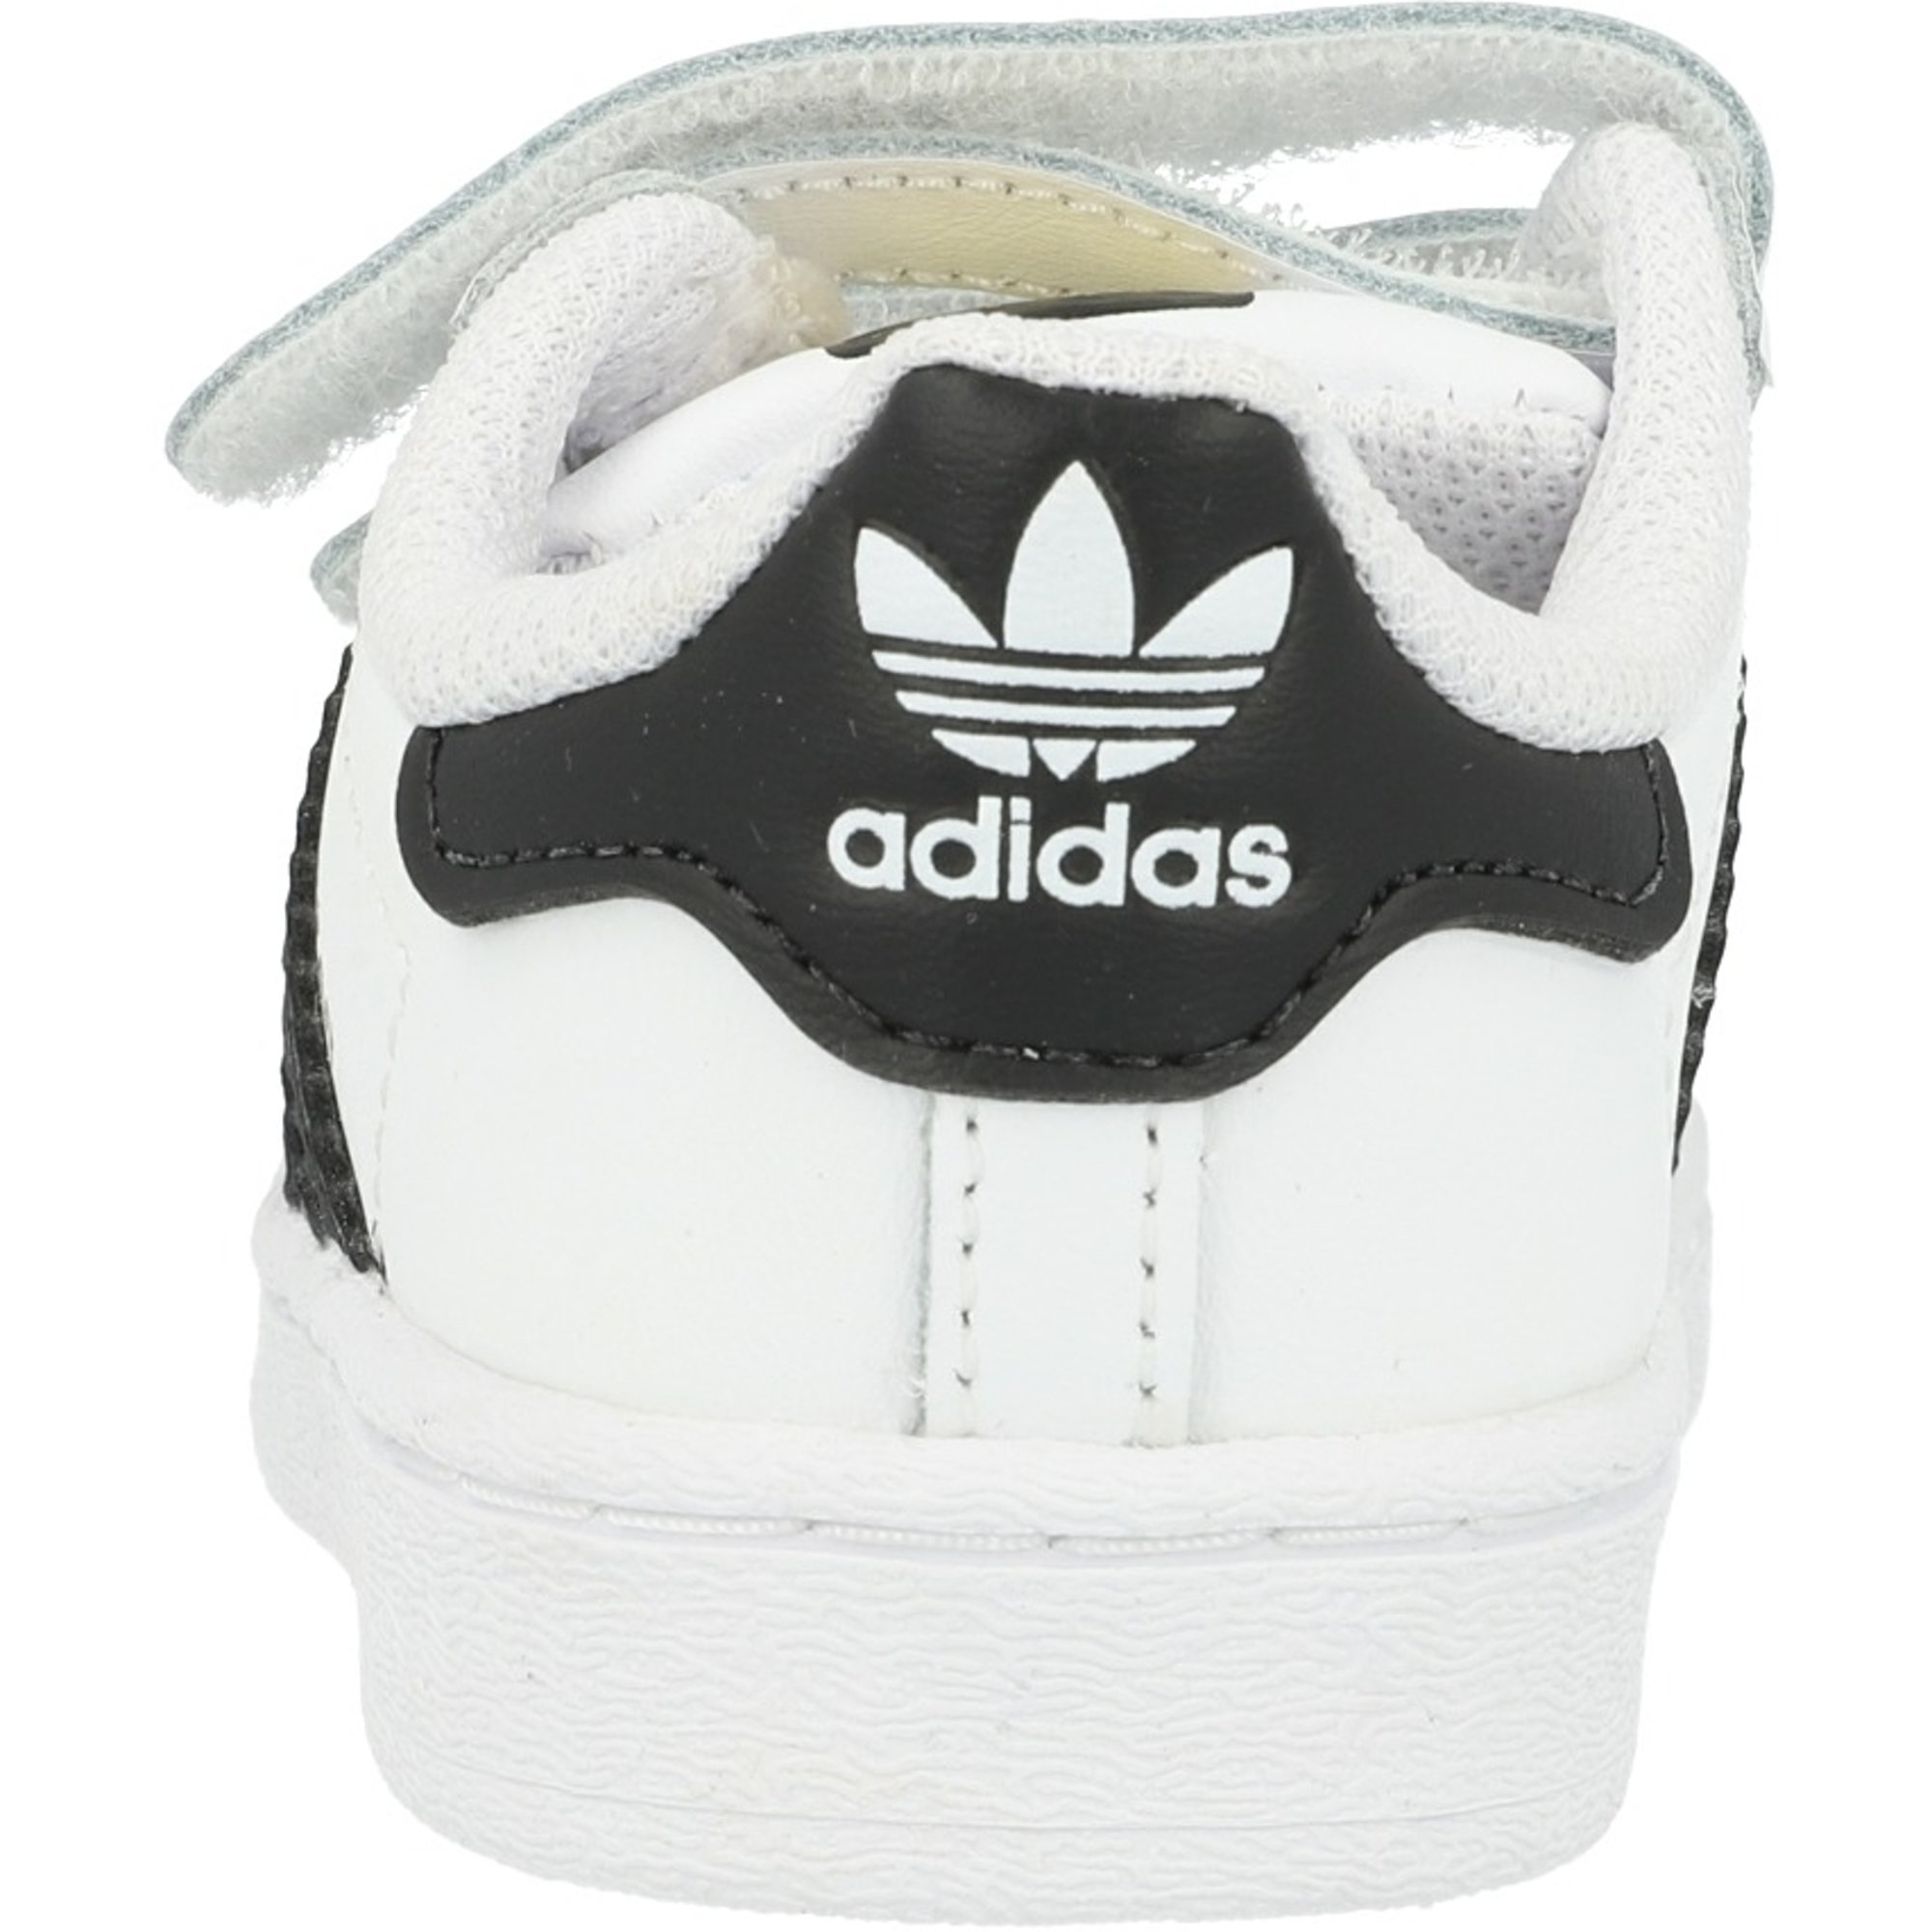 adidas Originals Superstar CF White/Core Black Leather